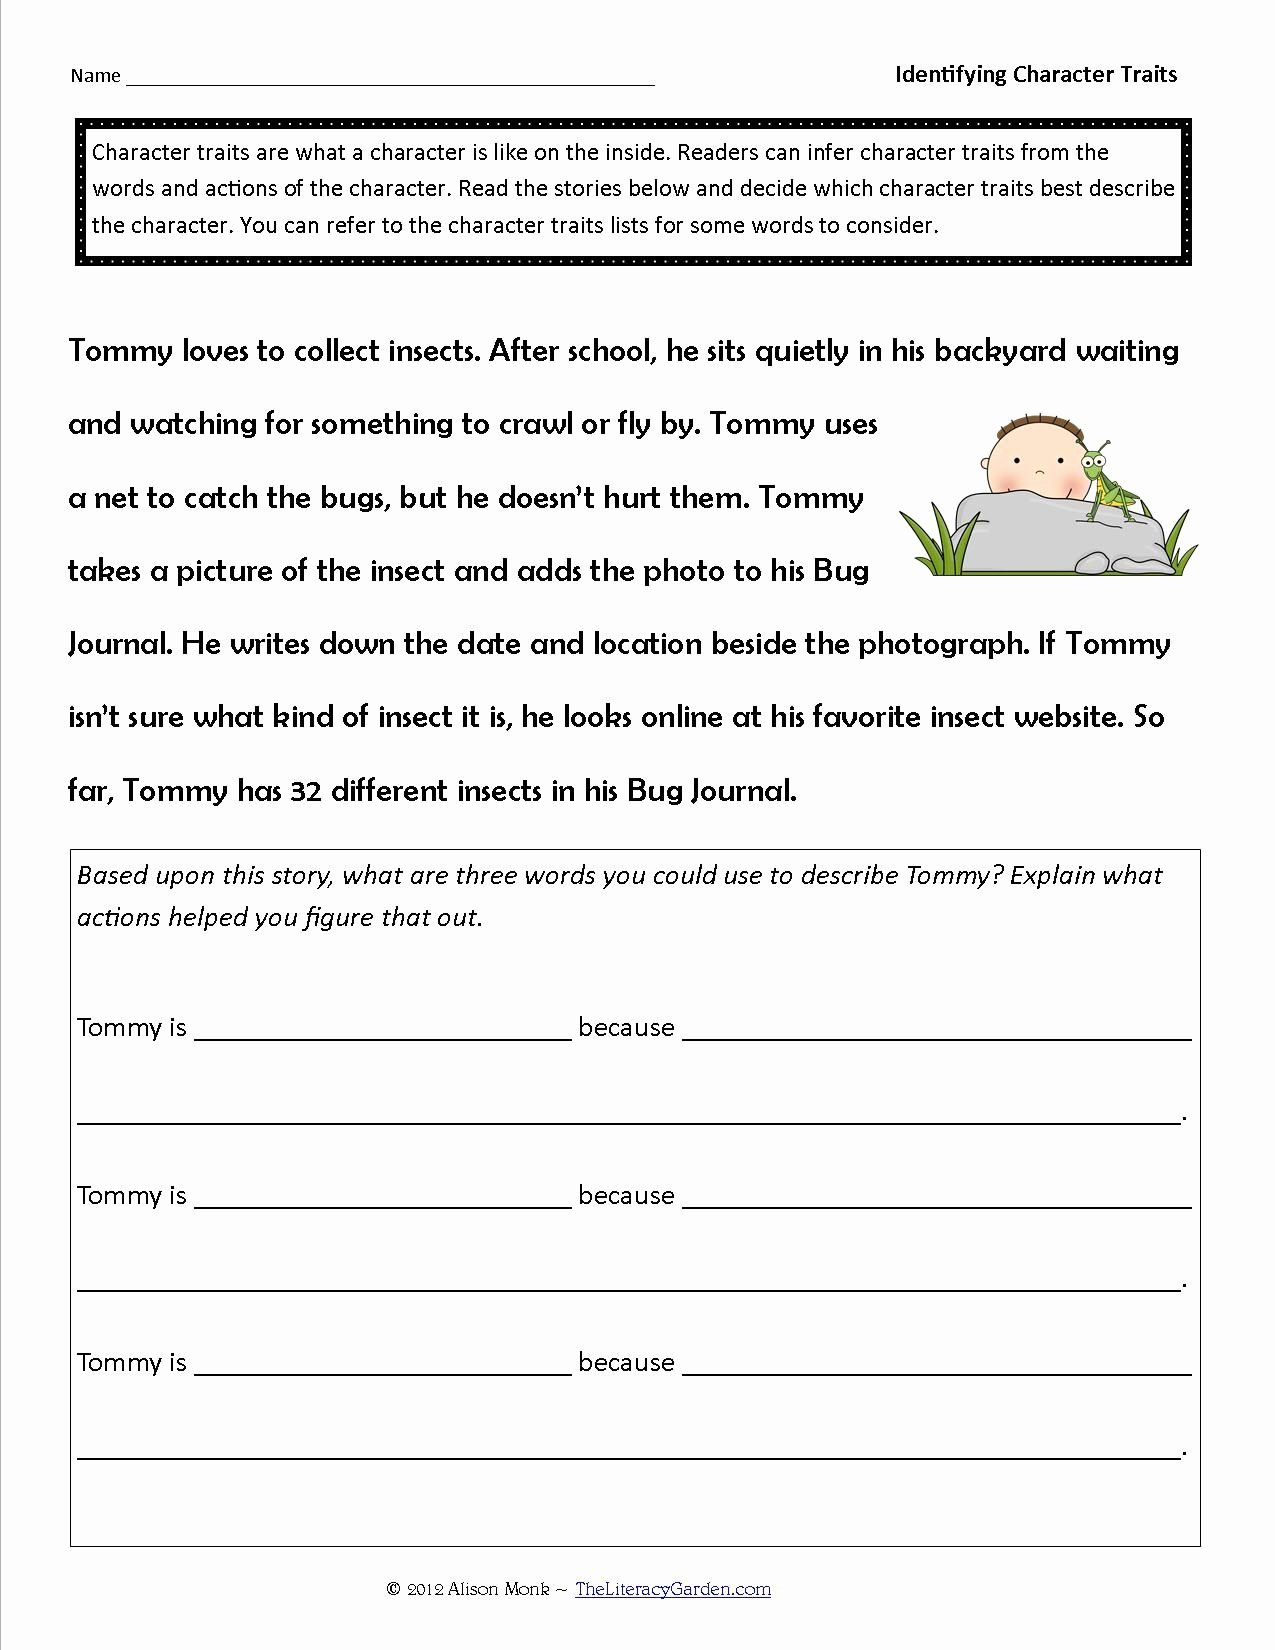 Character Traits Worksheet 3rd Grade Lovely Identifying Character Traits In Literature